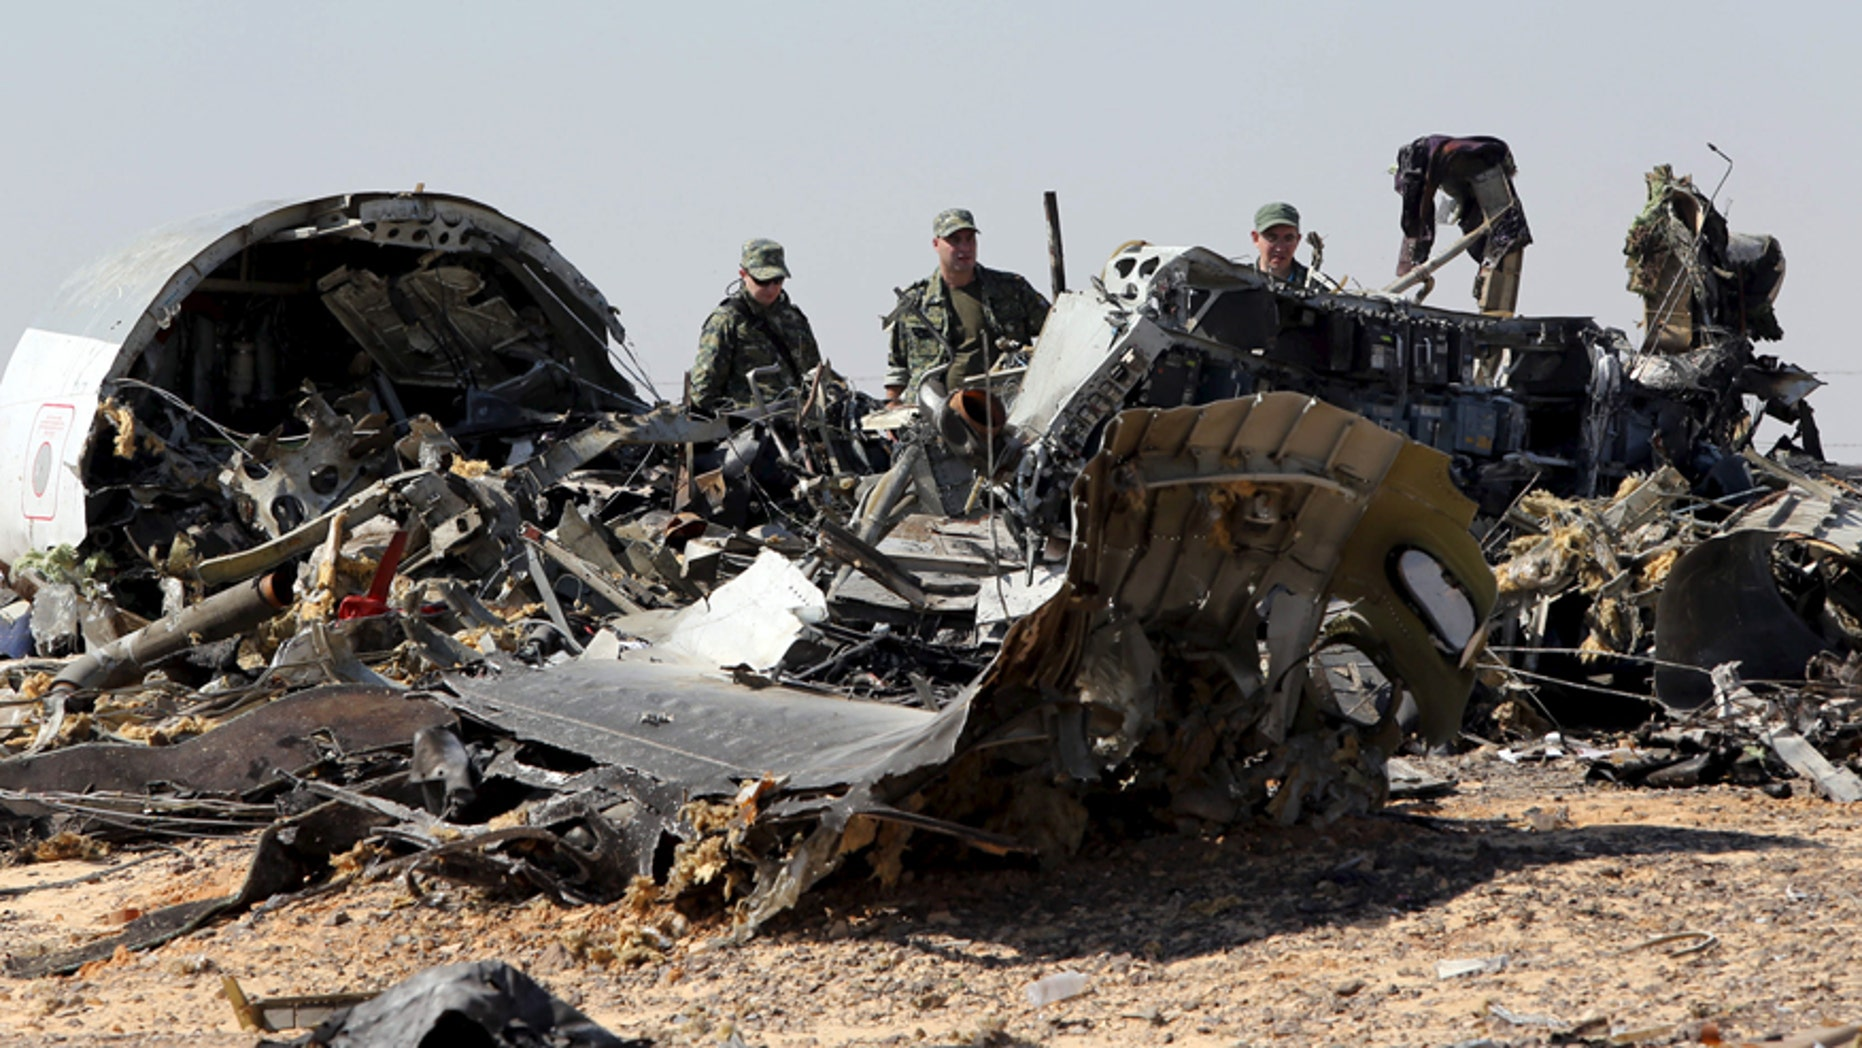 Nov. 1, 2015: Military investigators from Russia stand near the debris of a Russian airliner at the site of its crash at the Hassana area in Arish city, north Egypt.